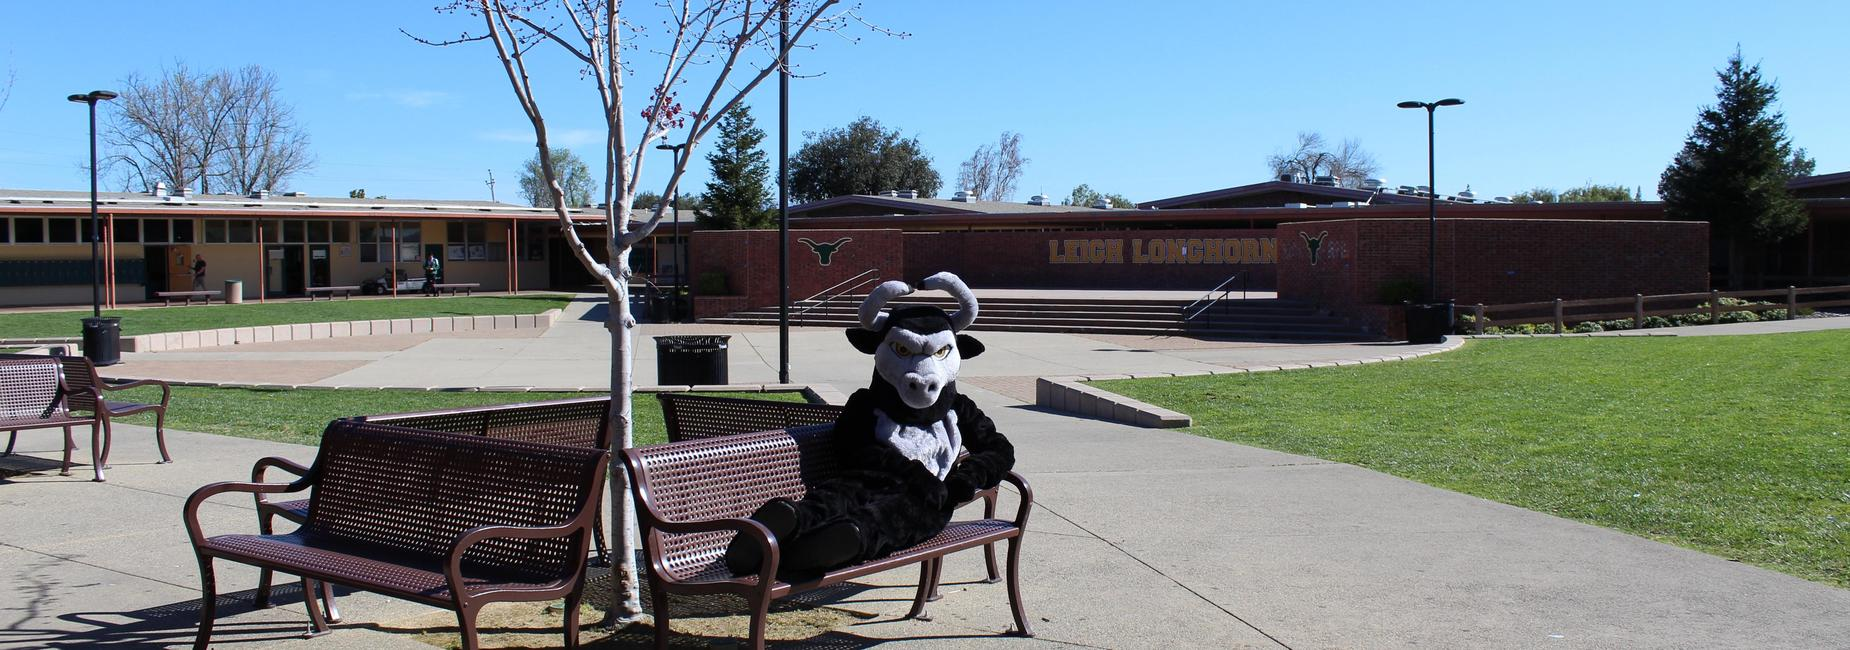 Our mascot - Leighroy - lounging on a bench